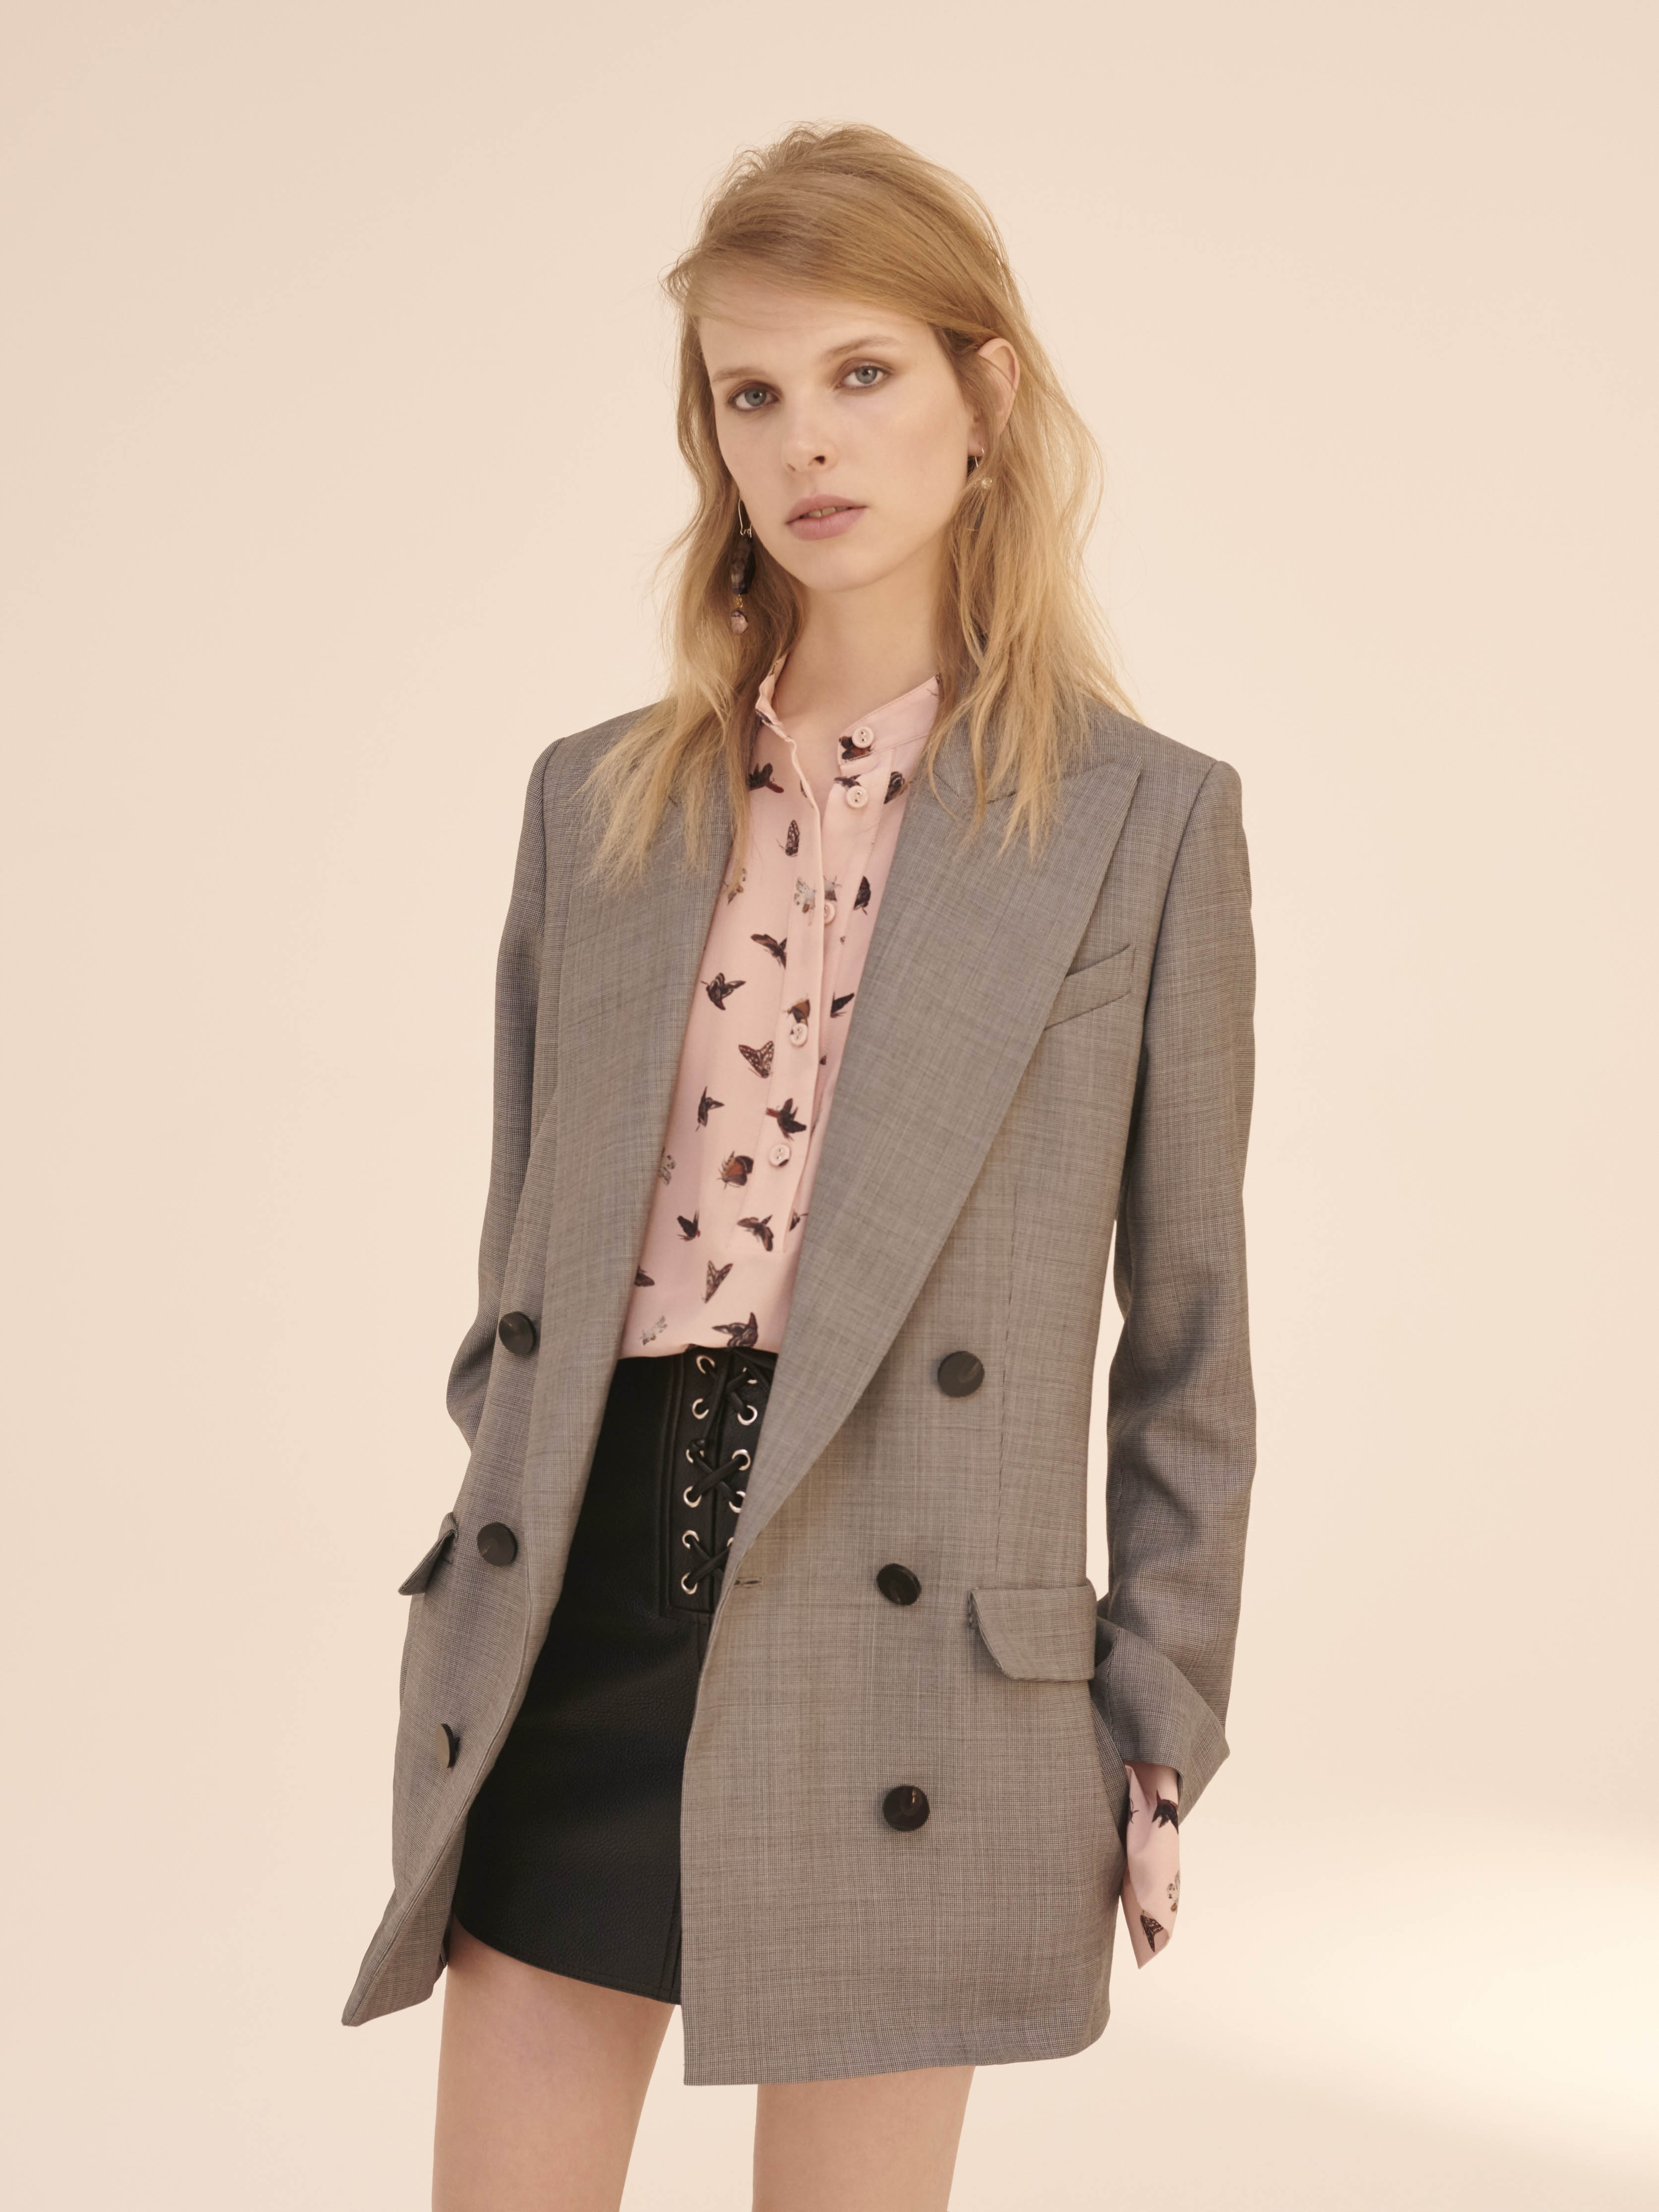 TOPSHOP Unique, Campion Blouse $360, Wycliffe Blazer, $660